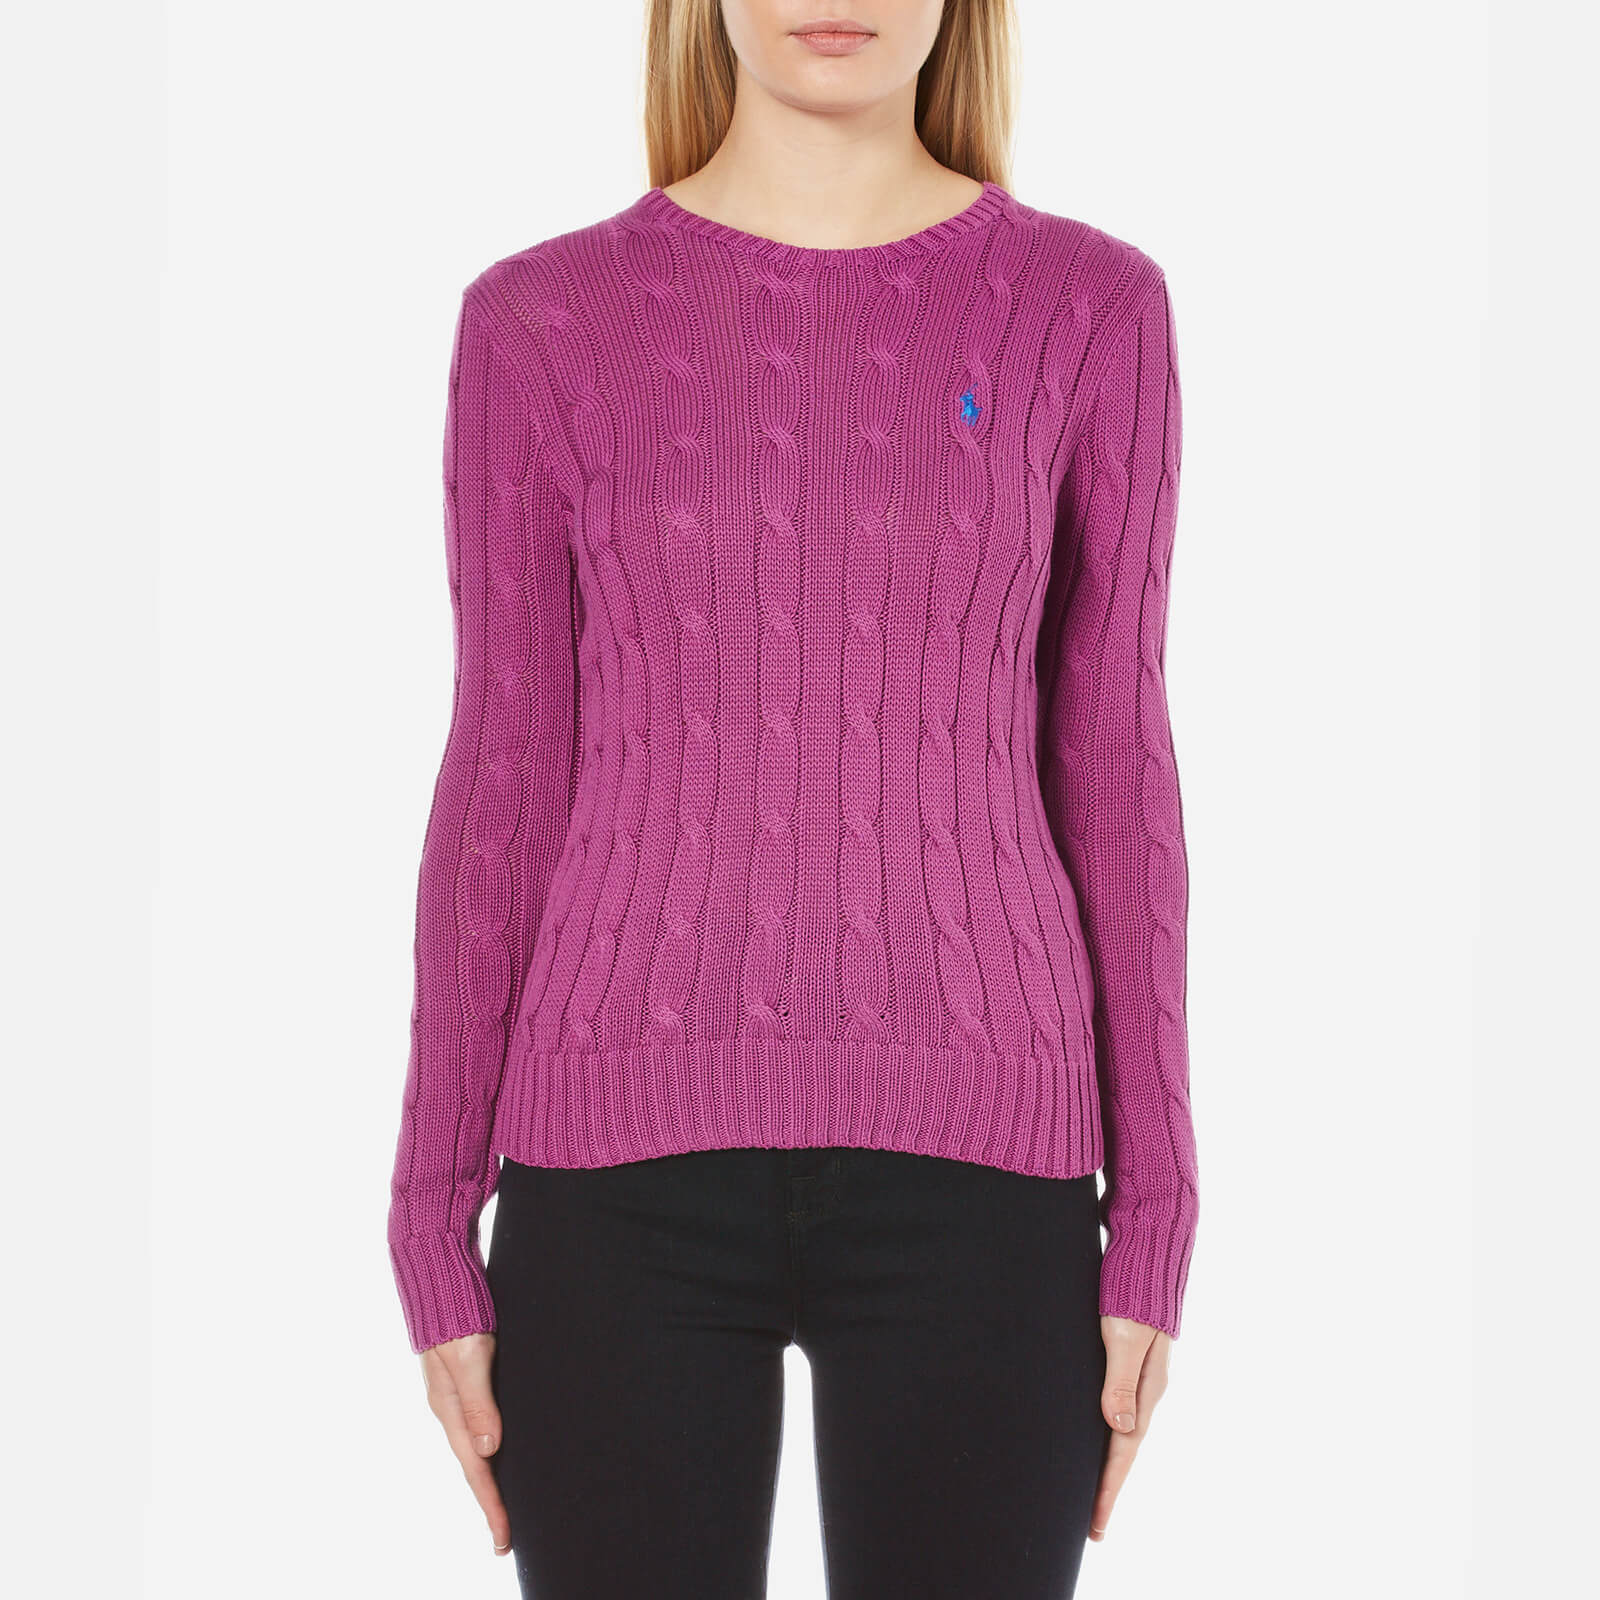 5cbe3f5b9658a6 Polo Ralph Lauren Women's Julianna Crew Neck Jumper - Hyannis Purple - Free  UK Delivery over £50